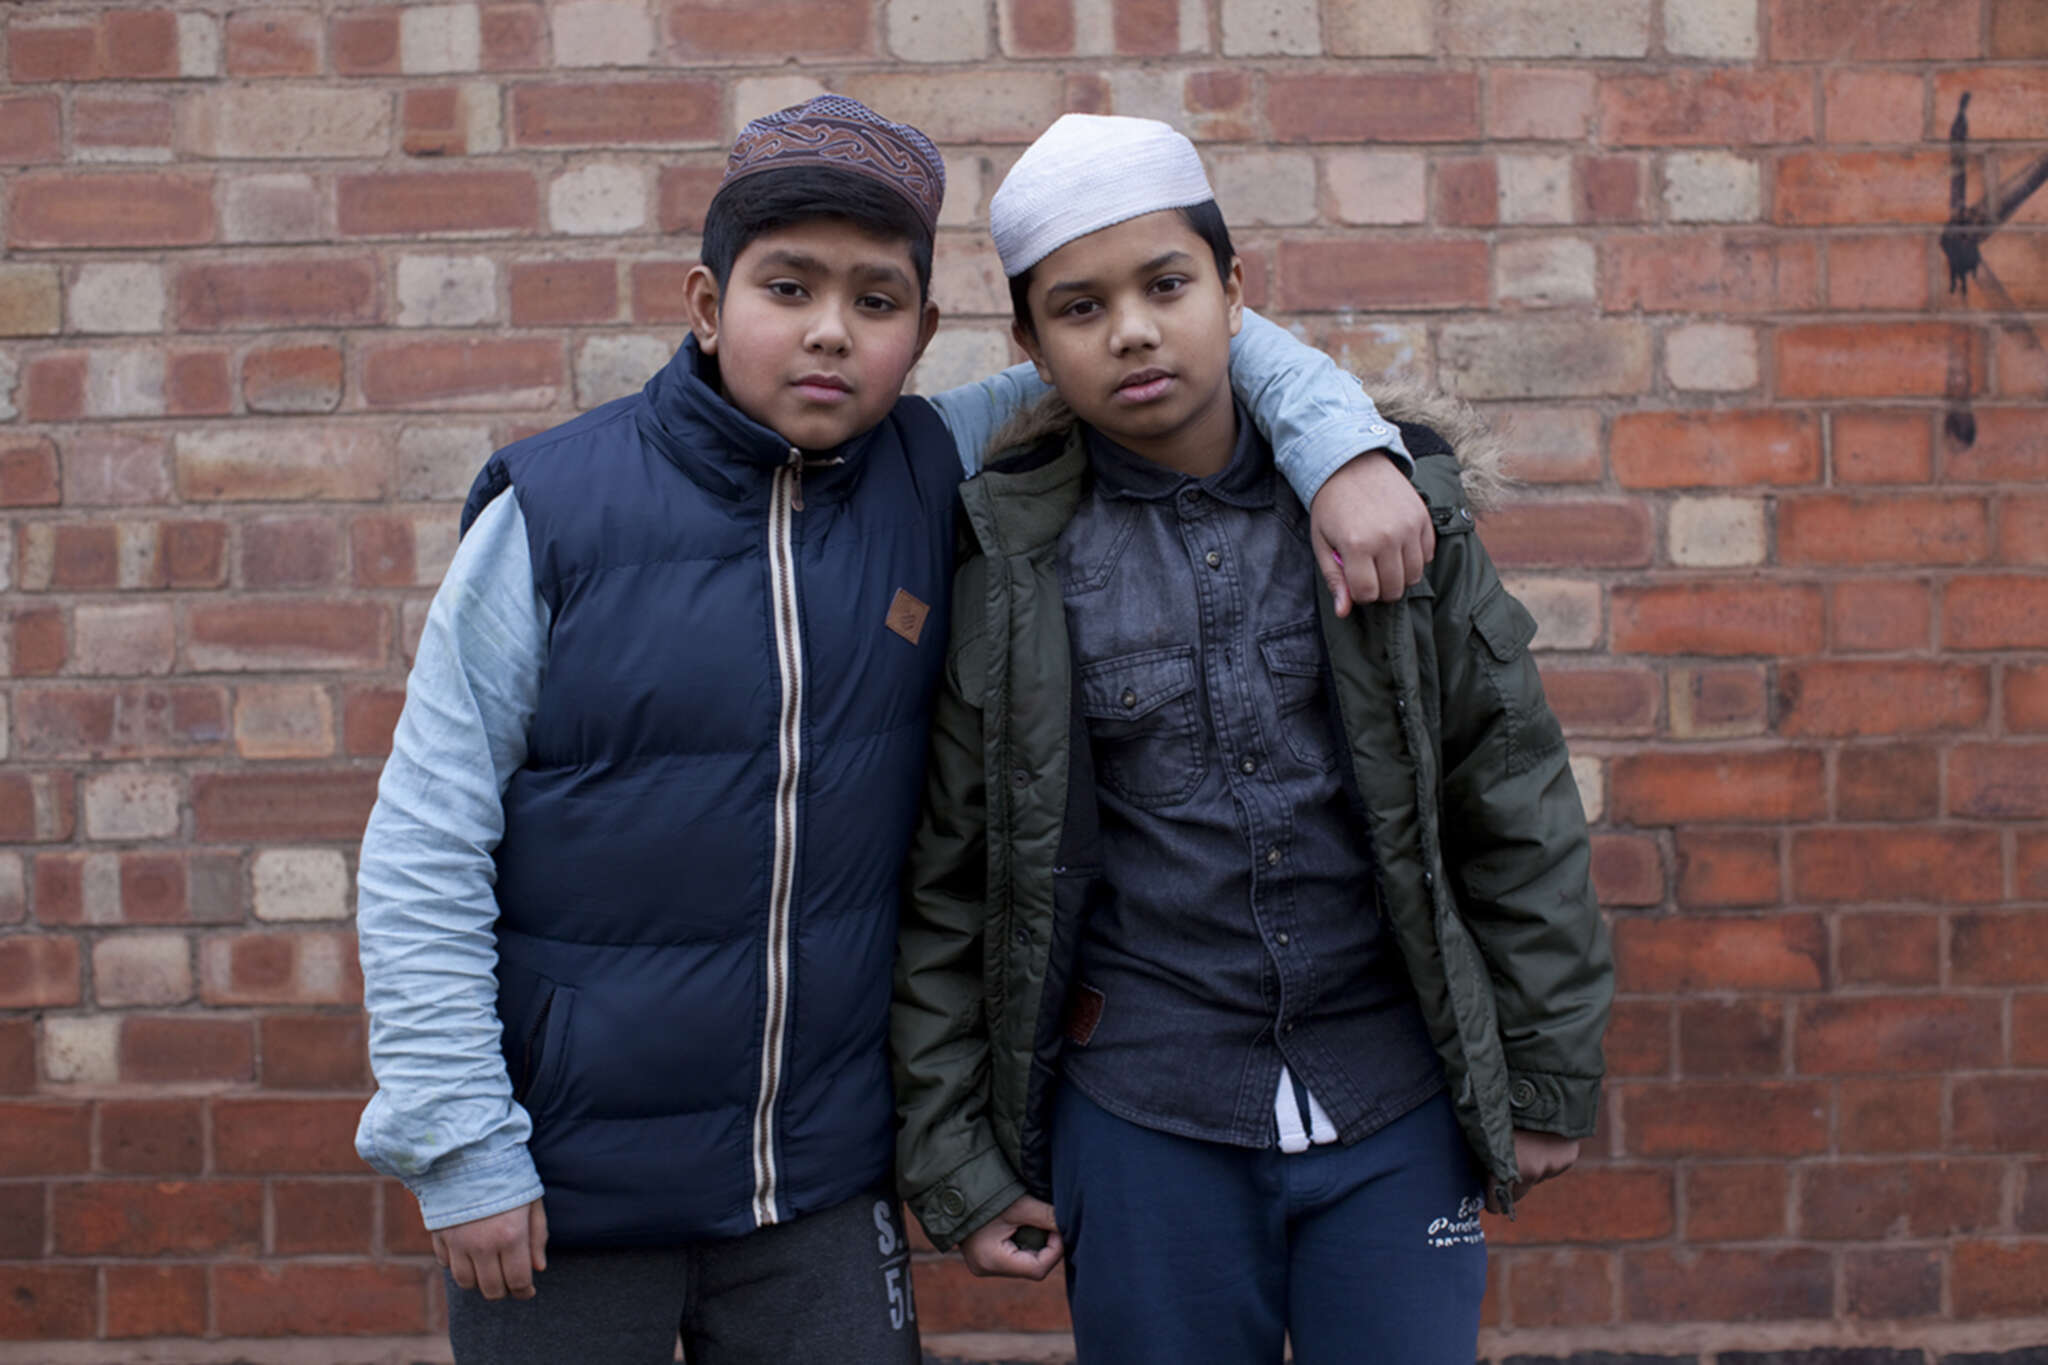 Friends and skull caps - The Quiet Town of Tipton ┬®, 2013 - 2015 © Mahtab Hussain